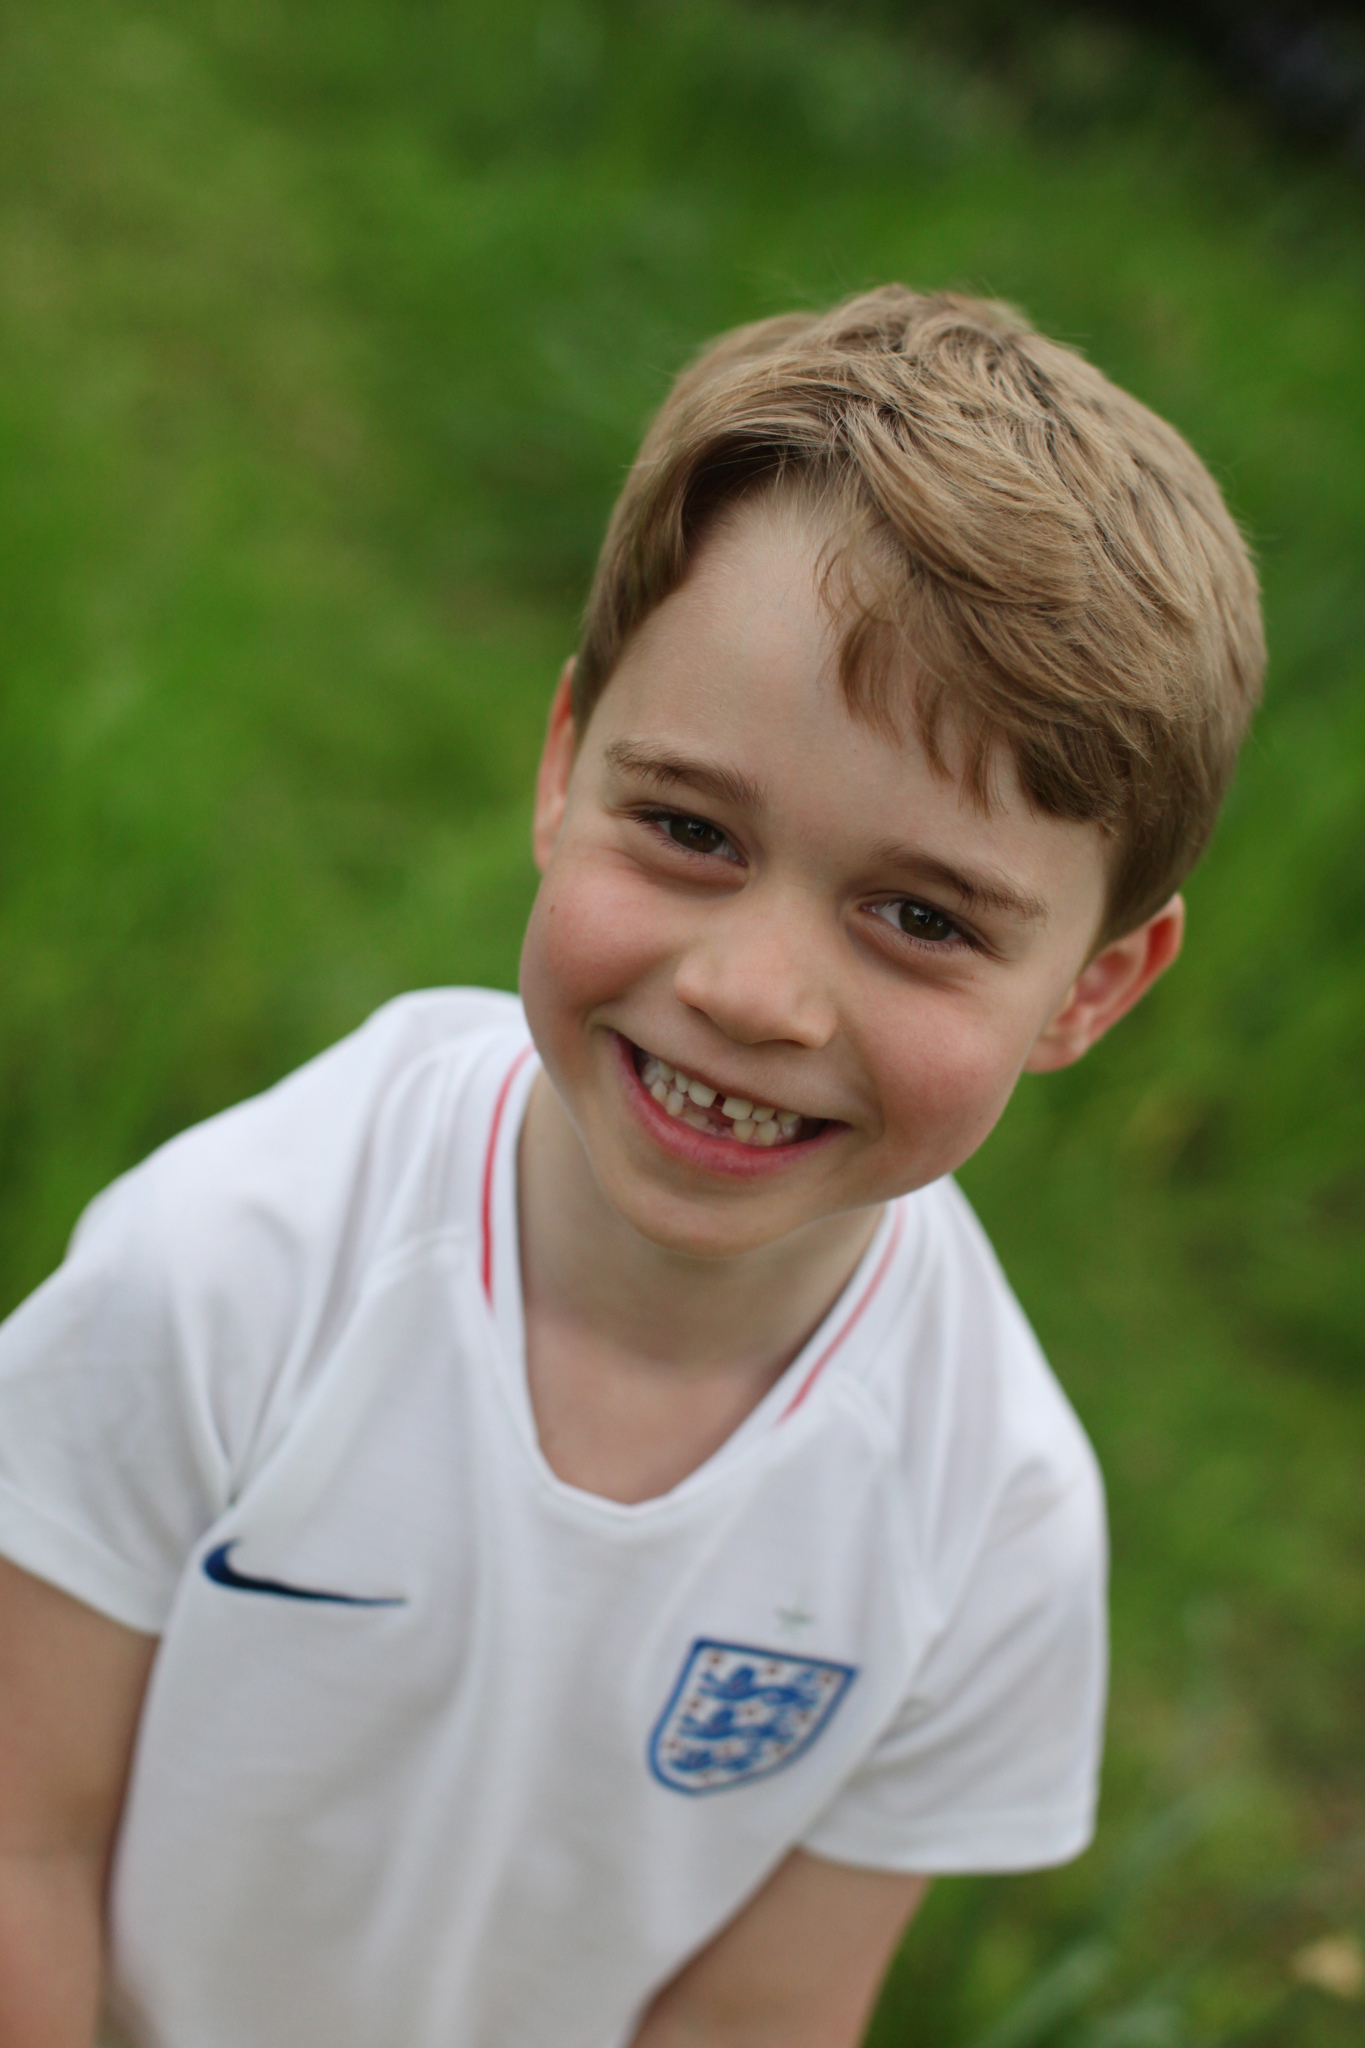 Britain's Prince George taken recently by his mother, the Duchess of Cambridge, in the garden of their home at Kensington Palace, to mark his sixth birthday in London, Britain. Prince George turns six on 22 July.